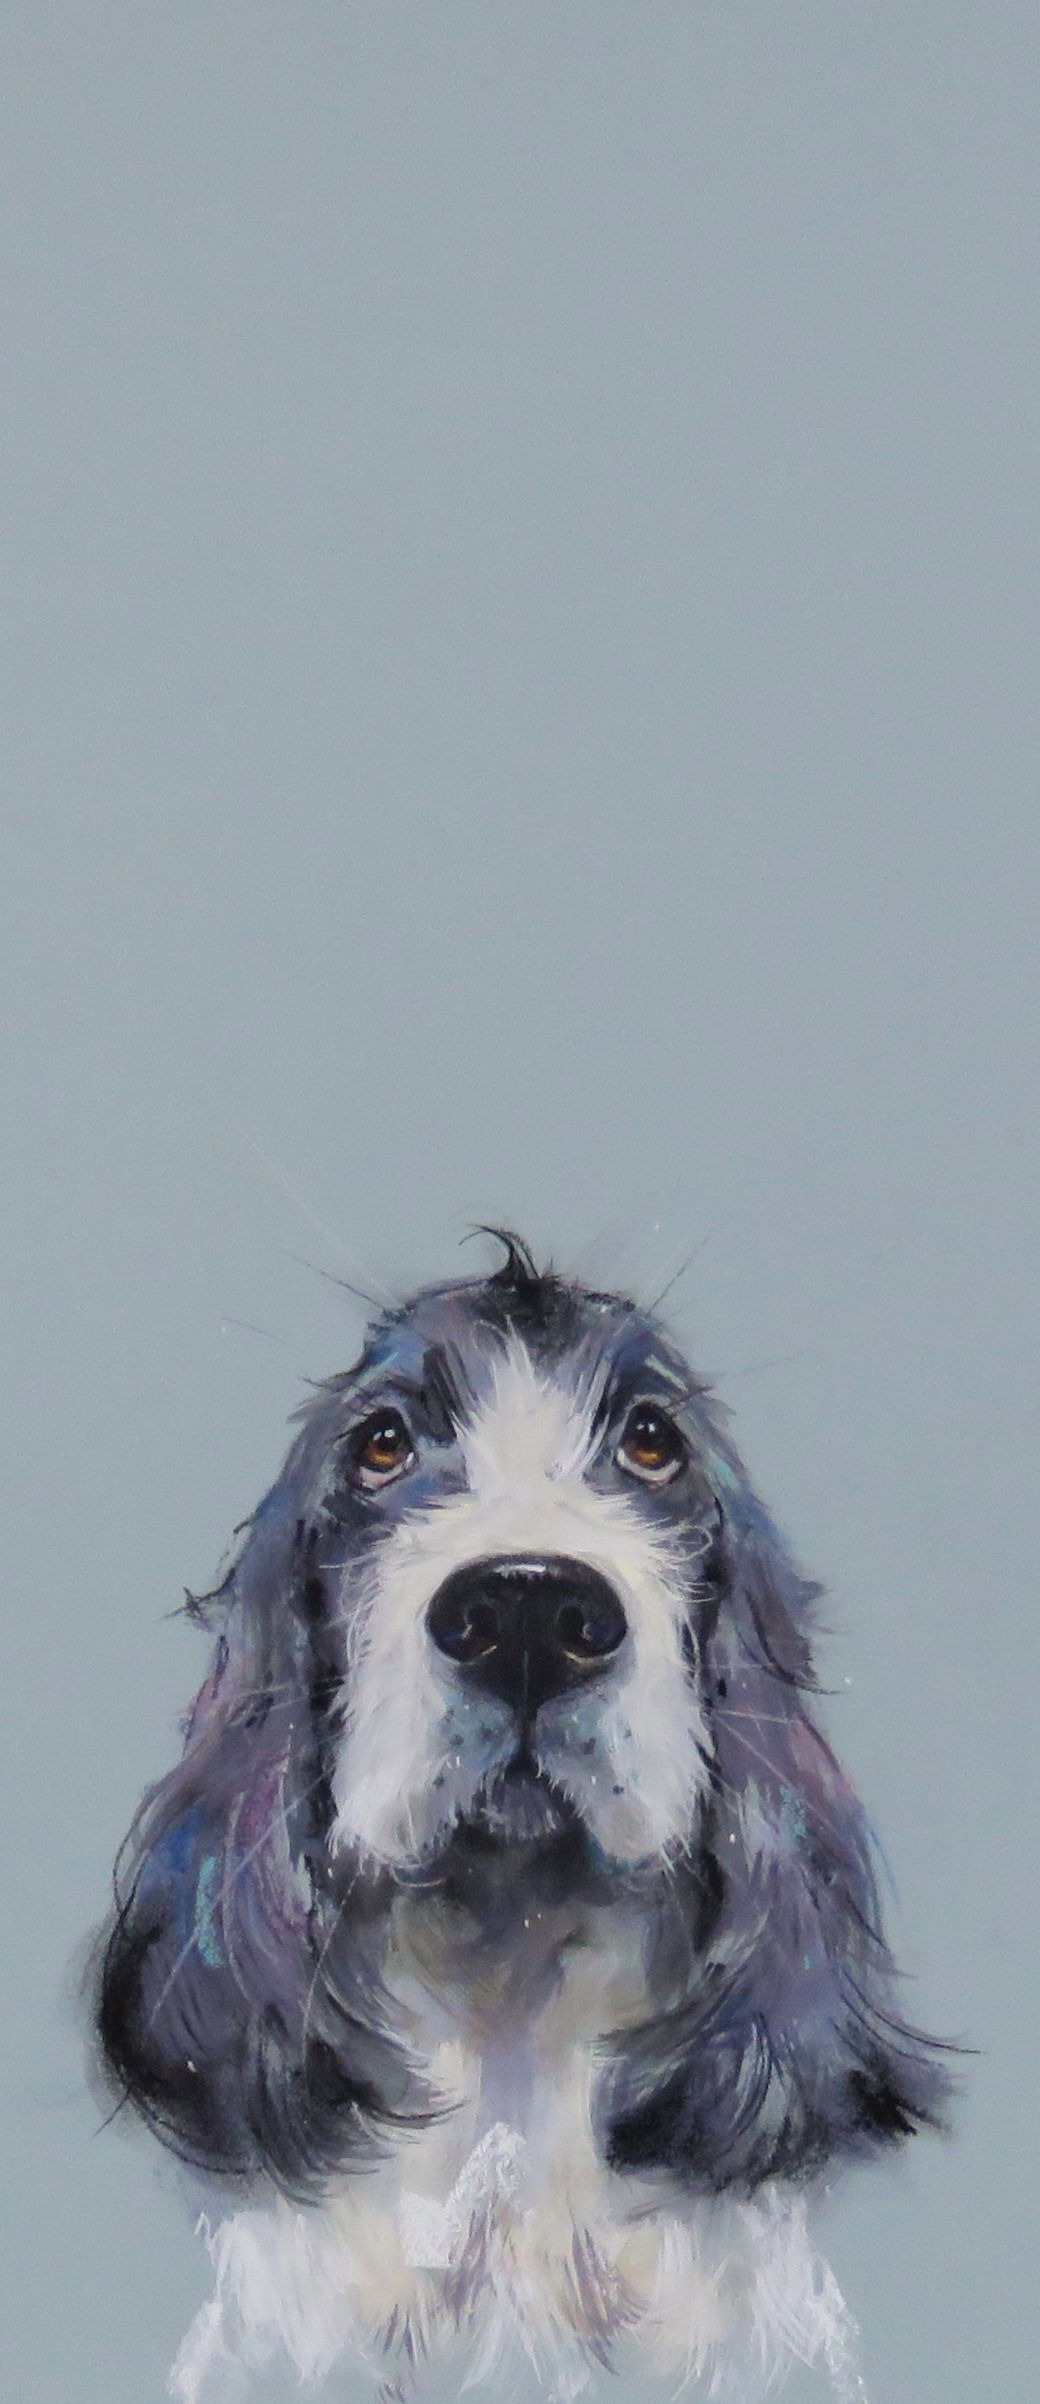 'Puppy Dog Eyes' available